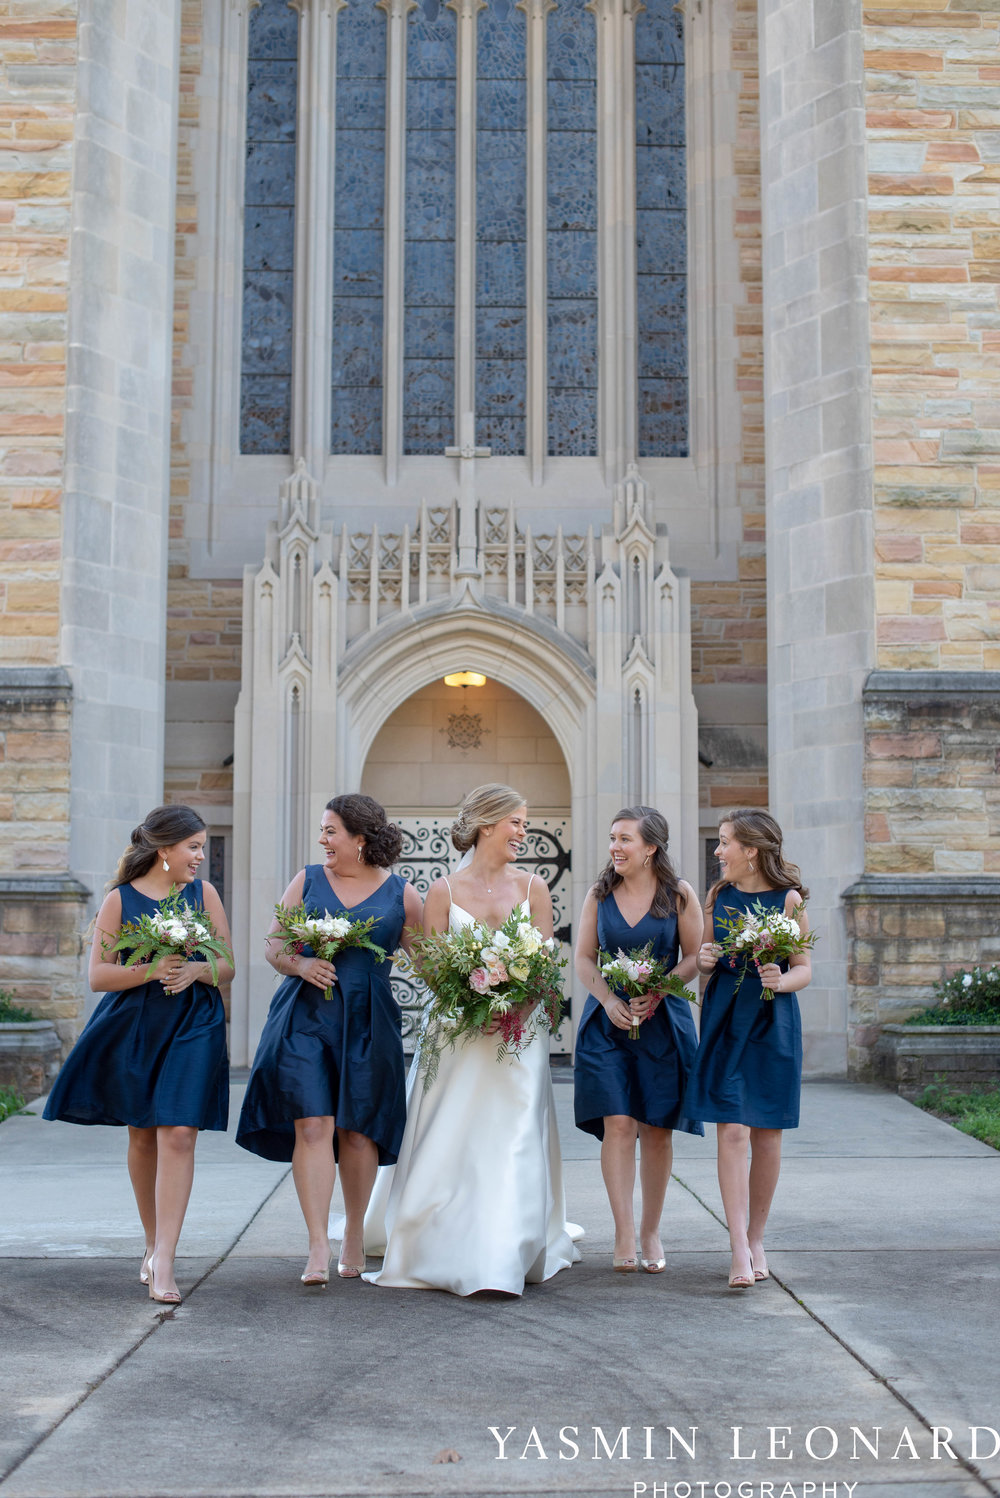 Wesley Memorial United Methodist Church - EmeryWood - High Point Weddings - High Point Wedding Photographer - NC Wedding Photographer - Yasmin Leonard Photography-15.jpg